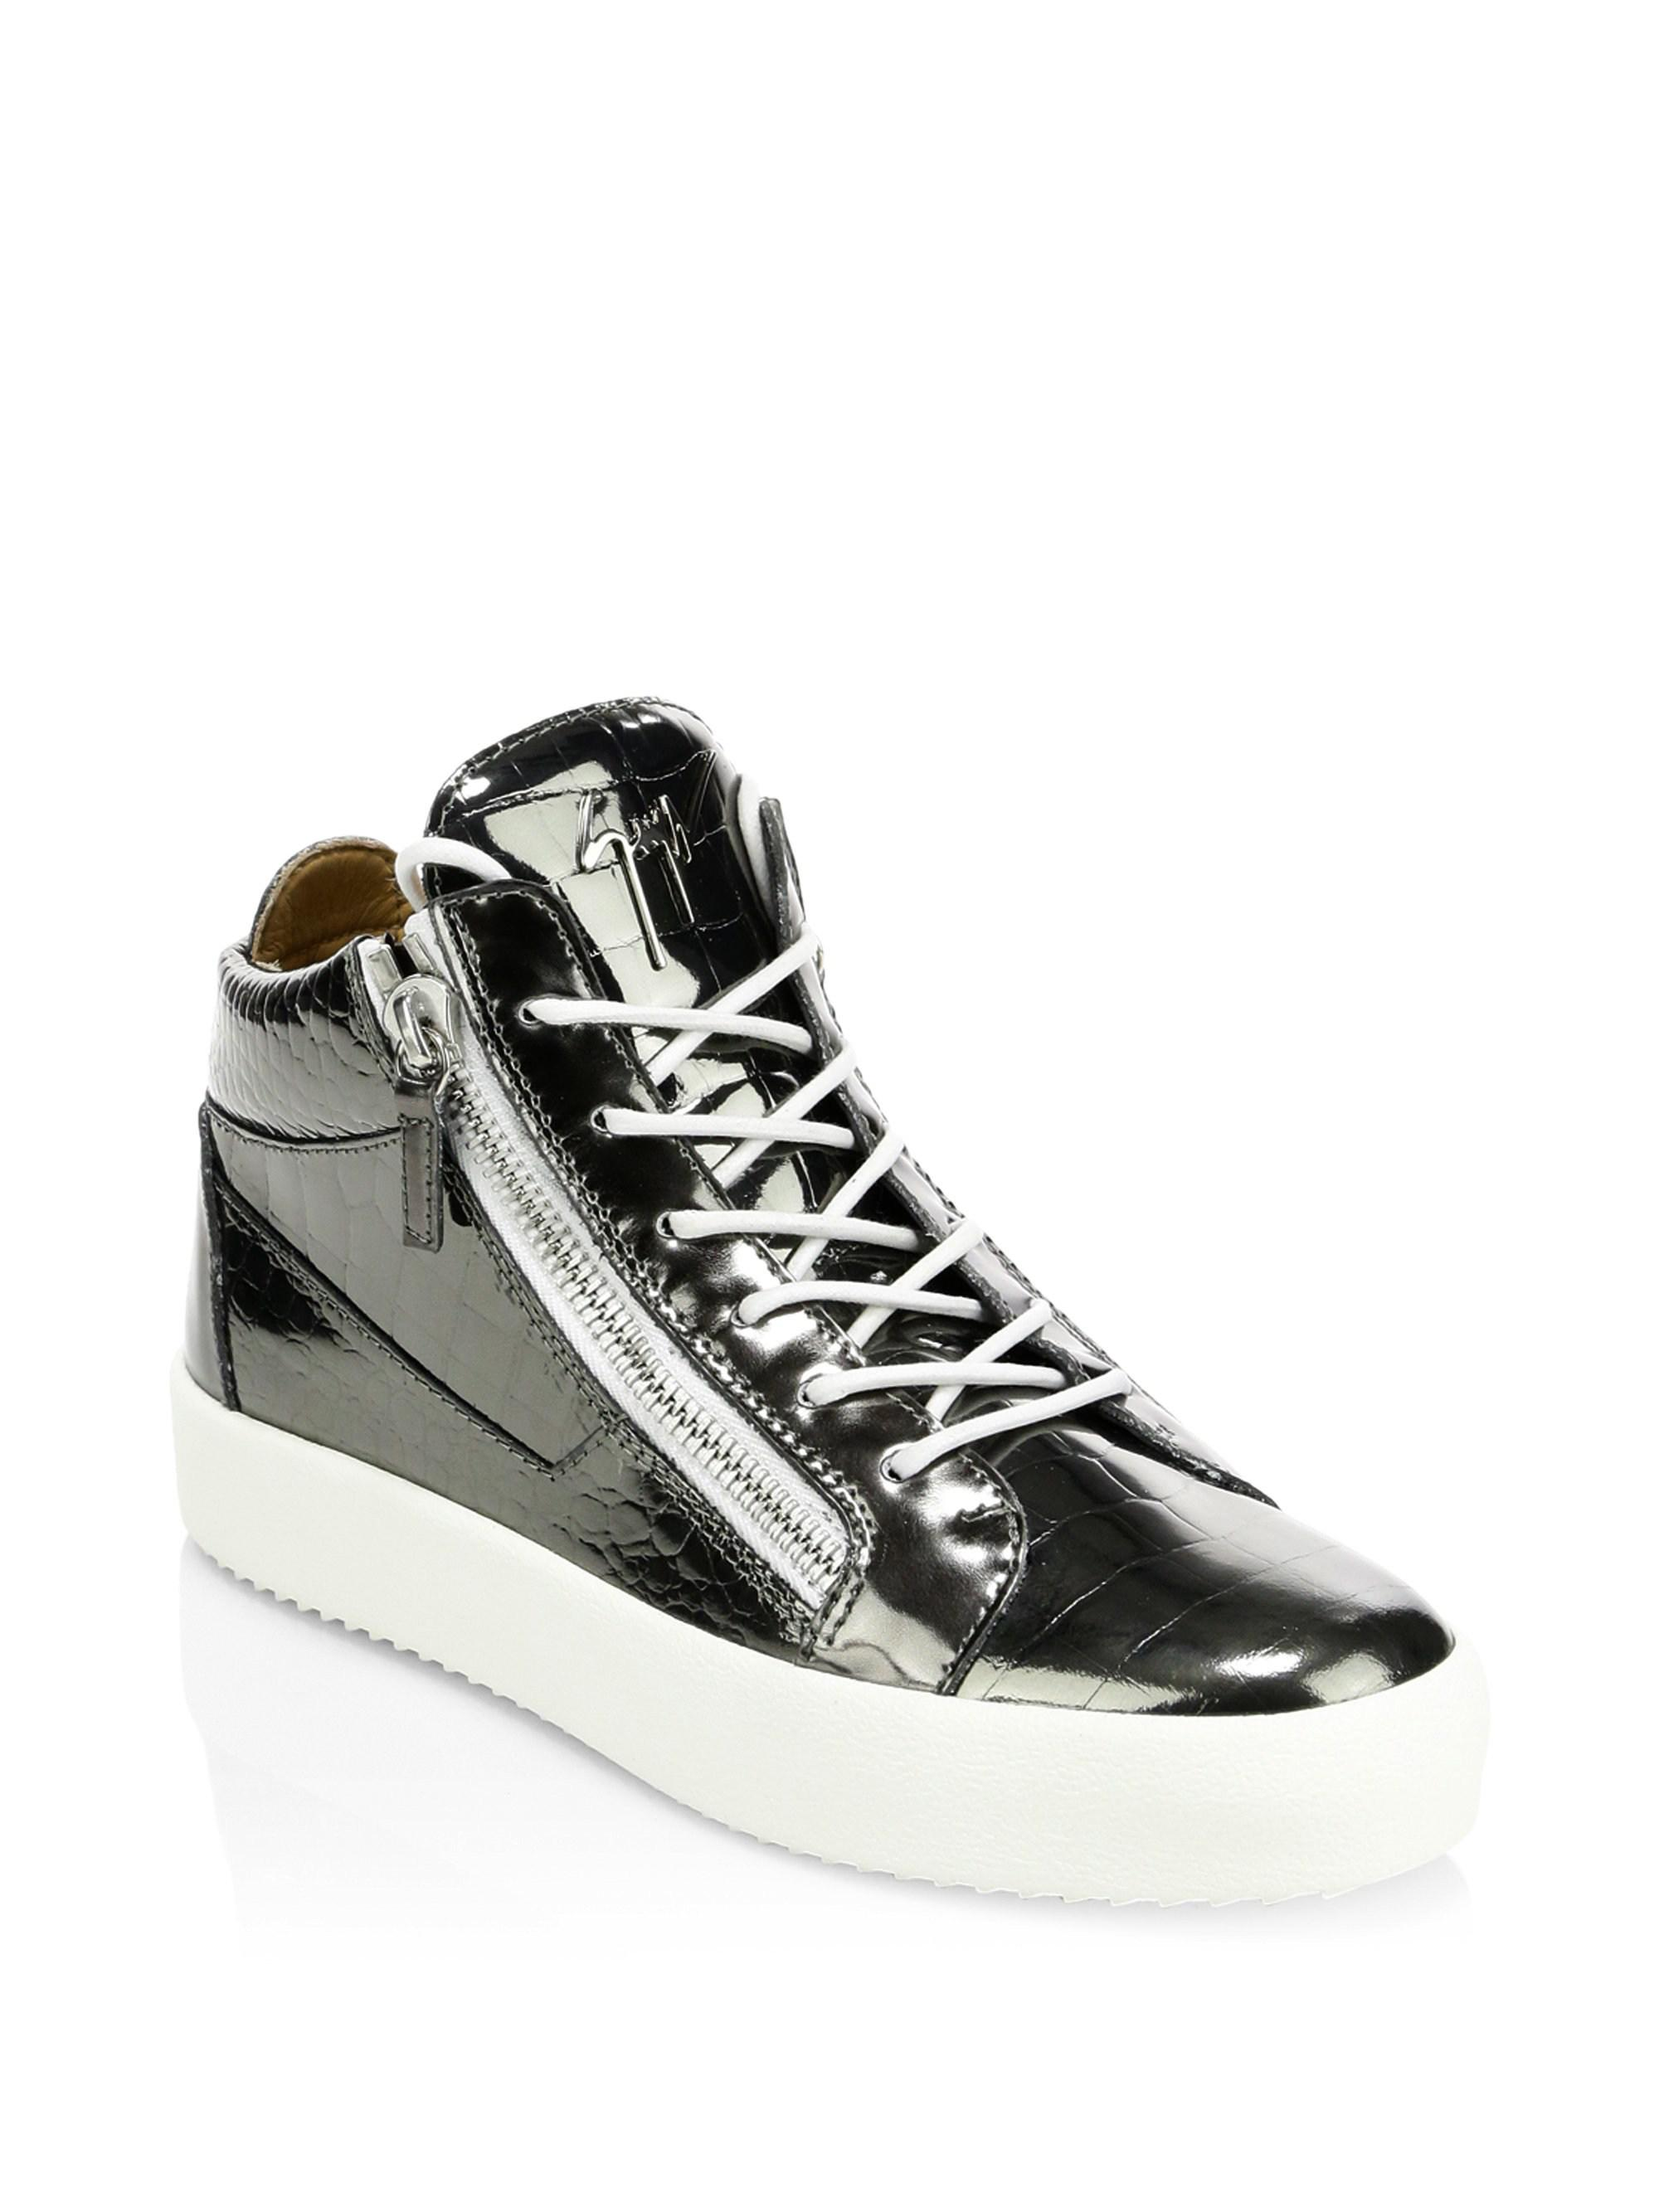 1cbce42a2175 Giuseppe Zanotti Crocodile Embossed Leather Sneakers in Black for ...